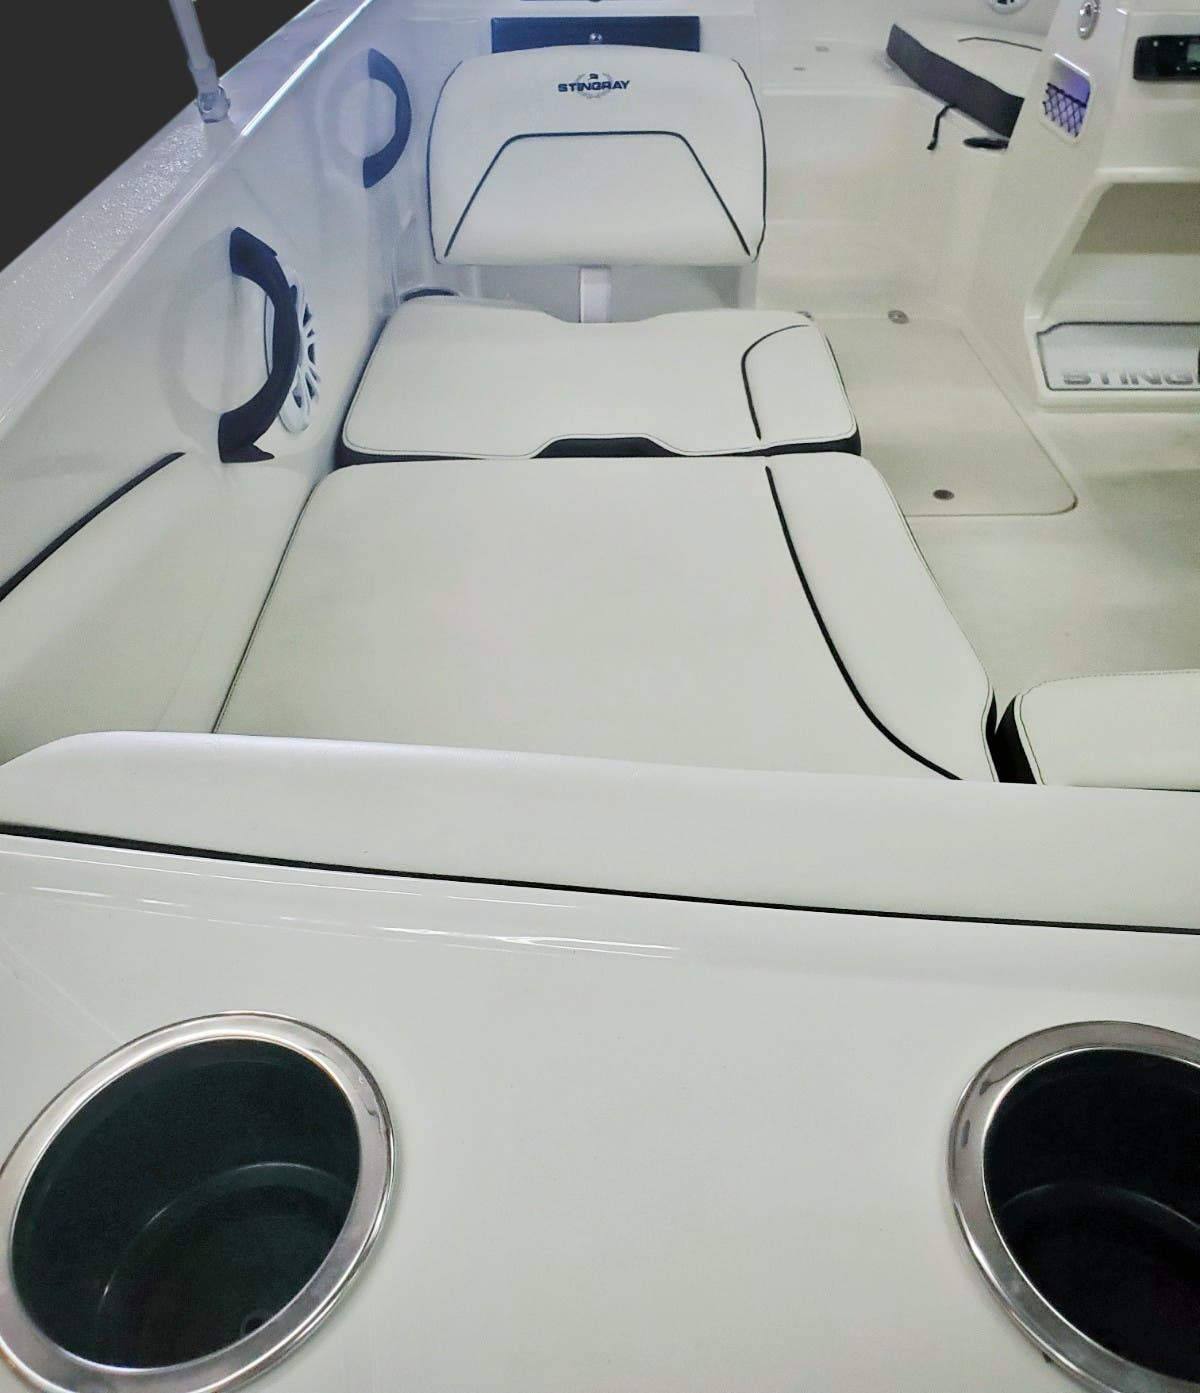 2022 Stingray boat for sale, model of the boat is 172sc & Image # 16 of 17